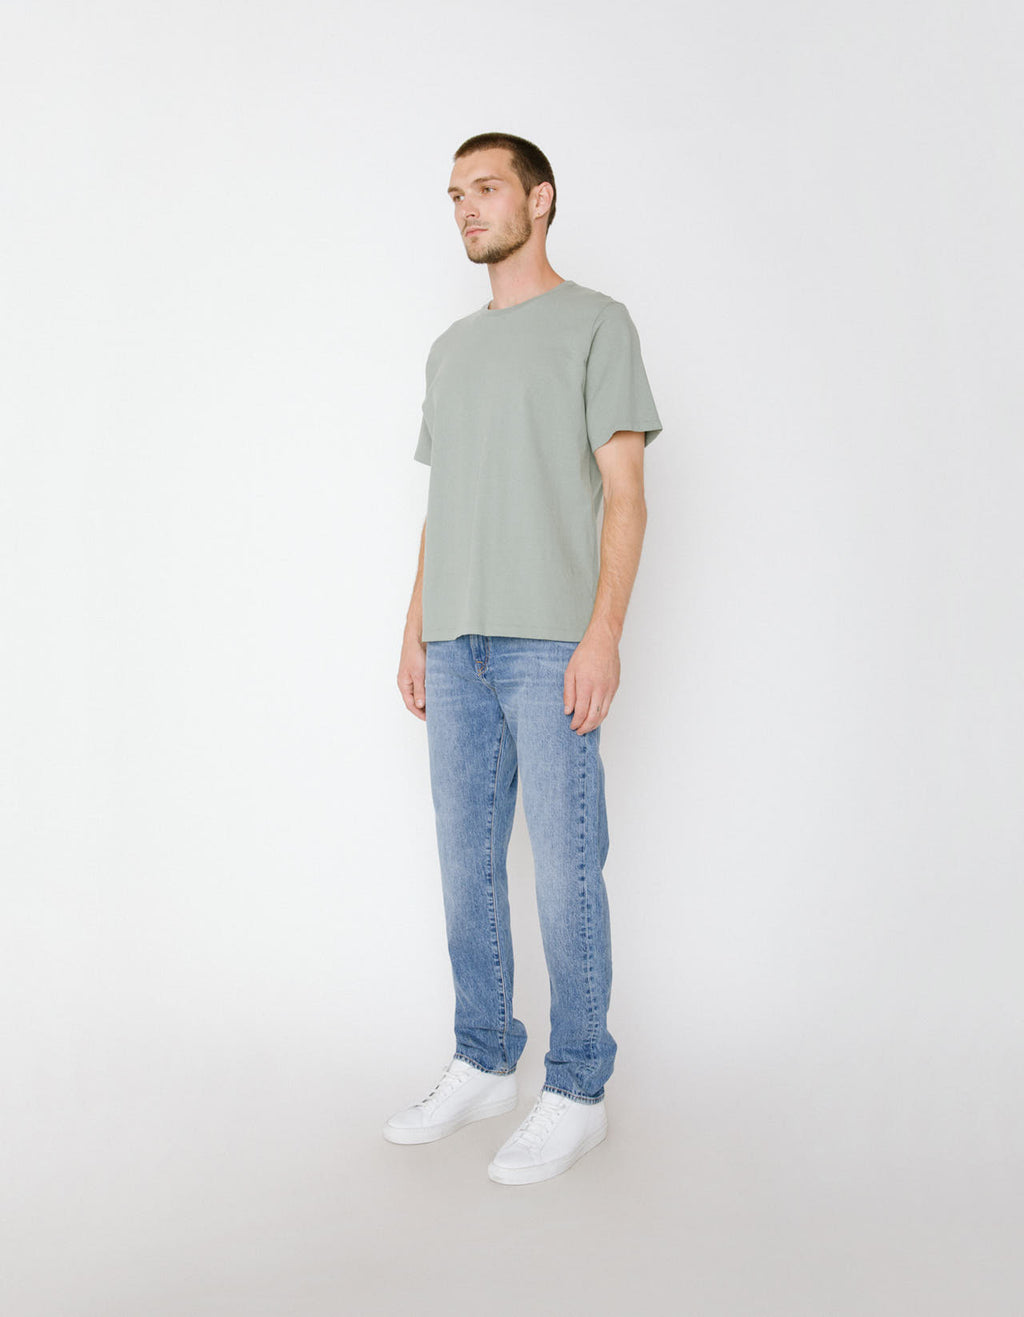 The Scout Crew Neck Tee in Sage